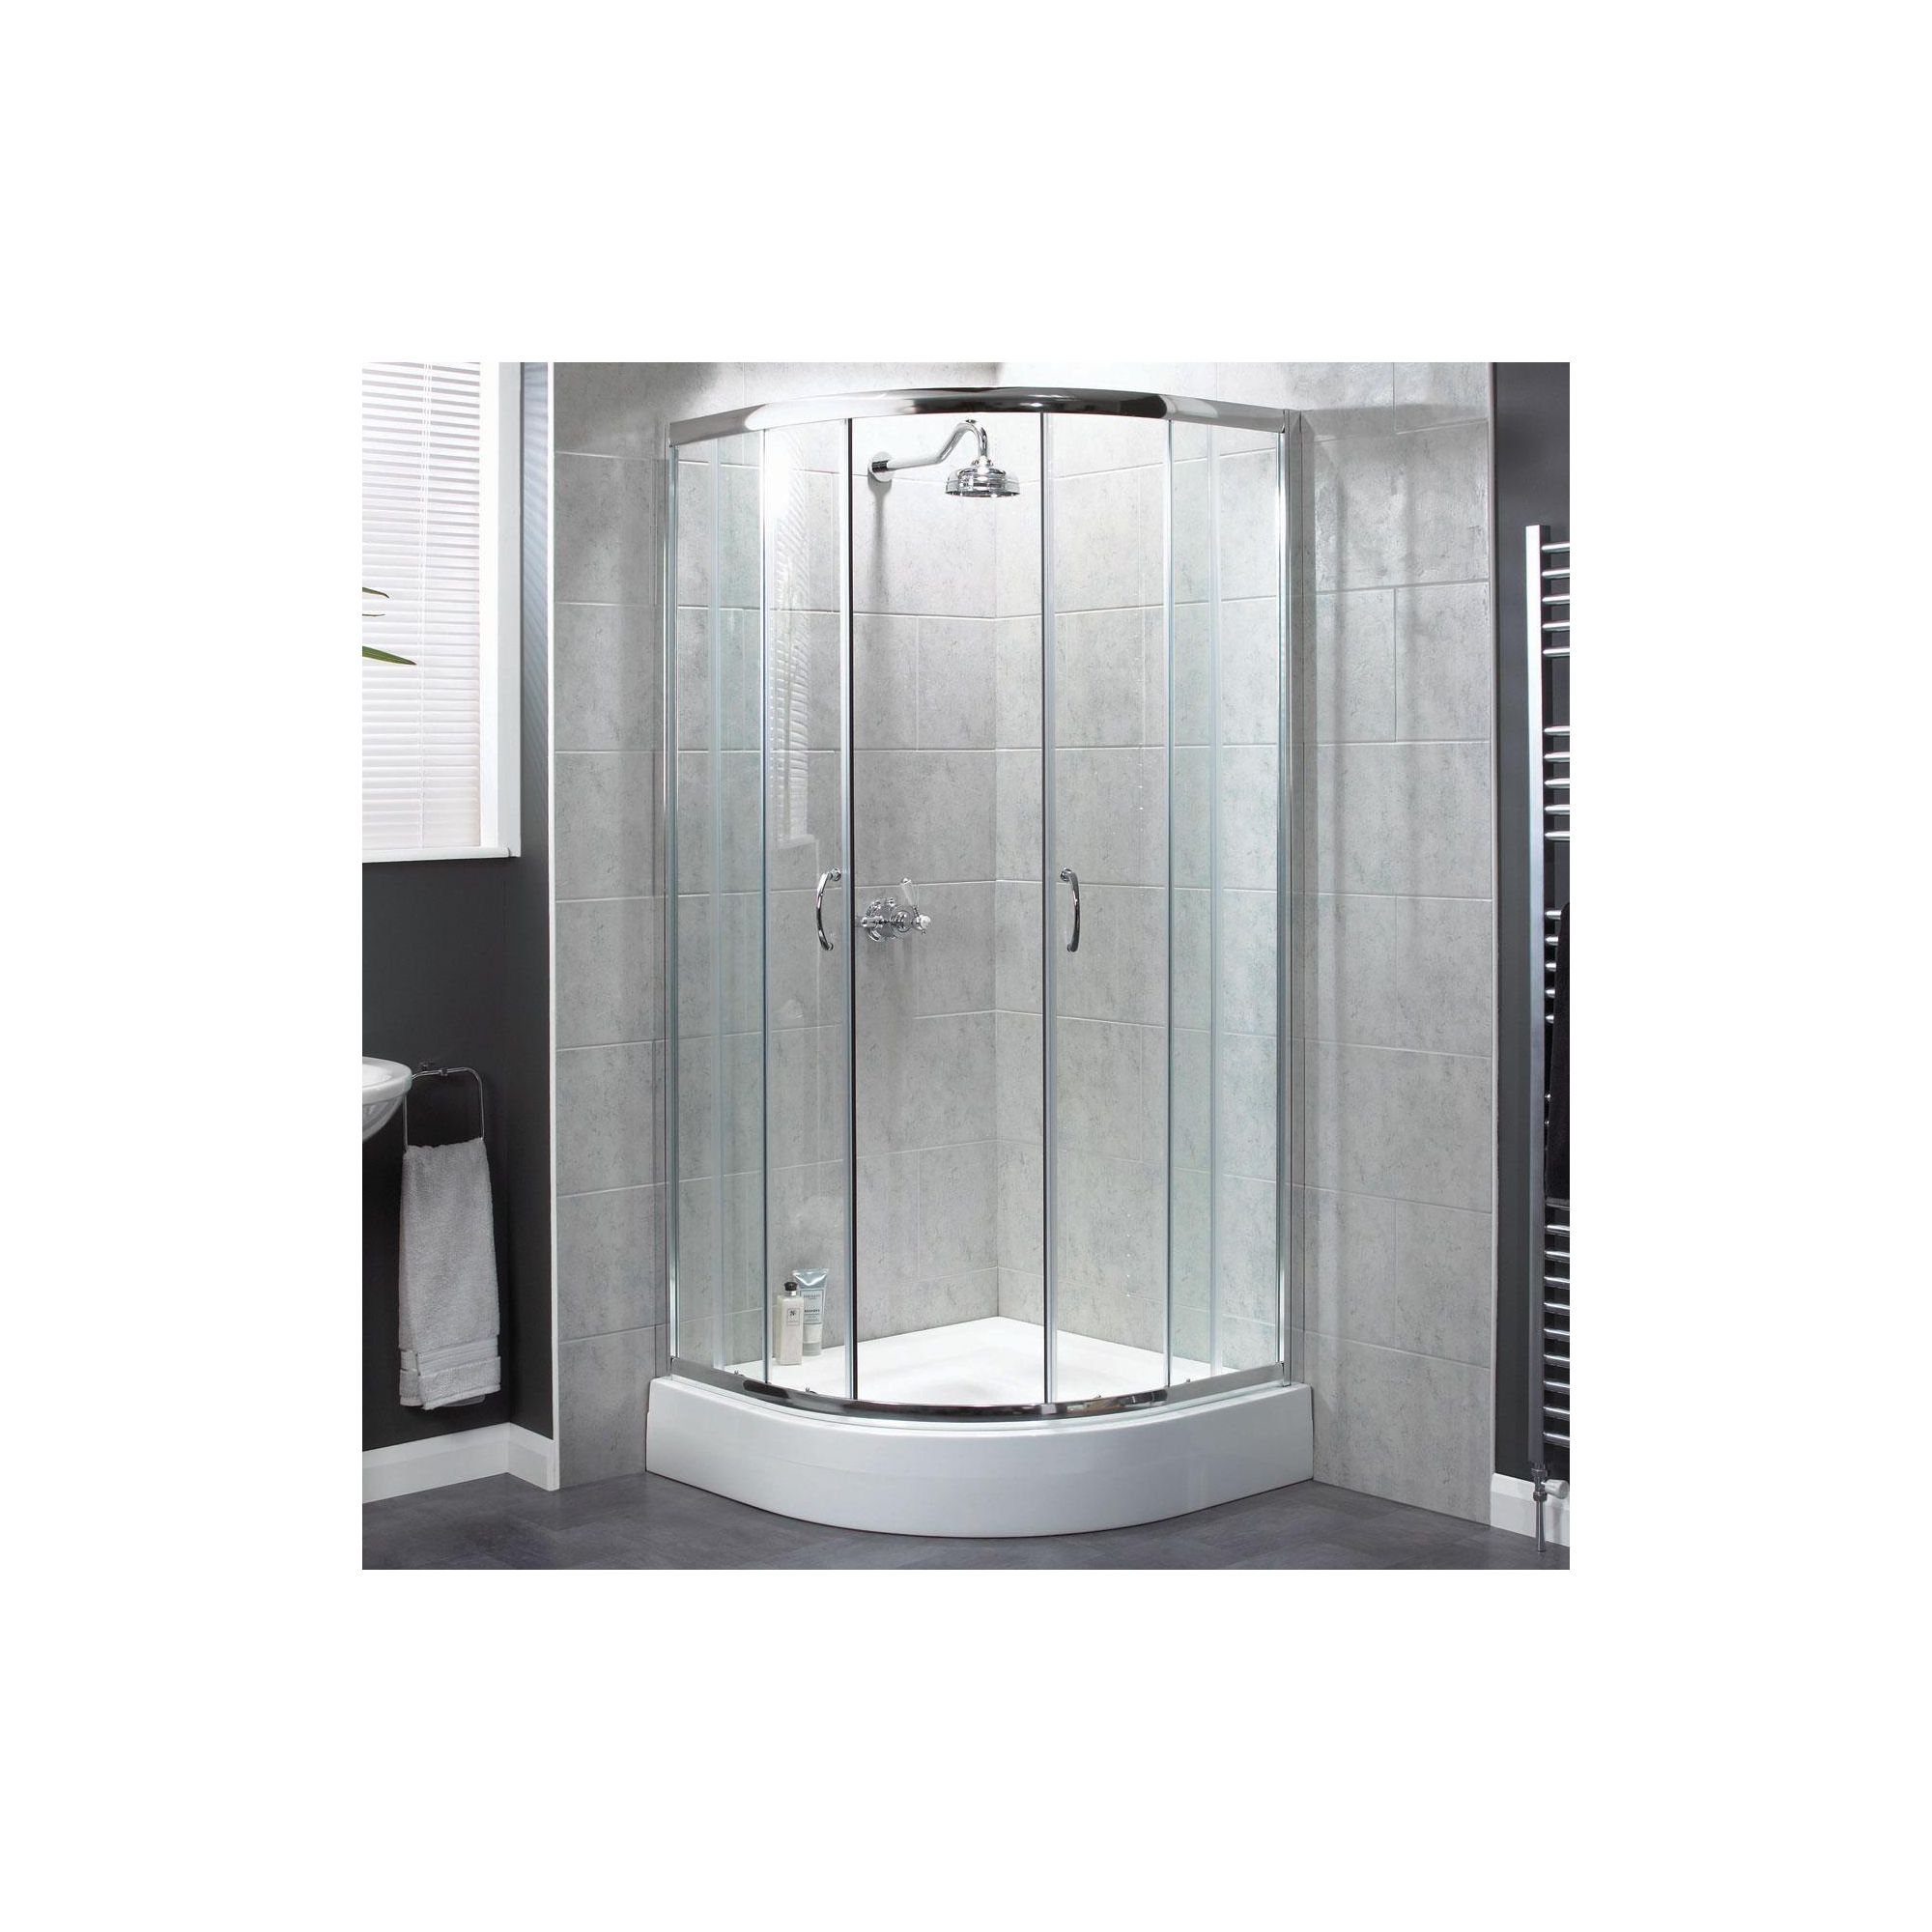 Aqualux Shine Quadrant Shower Door, 900mm x 900mm, Polished Silver Frame, 6mm Glass at Tesco Direct